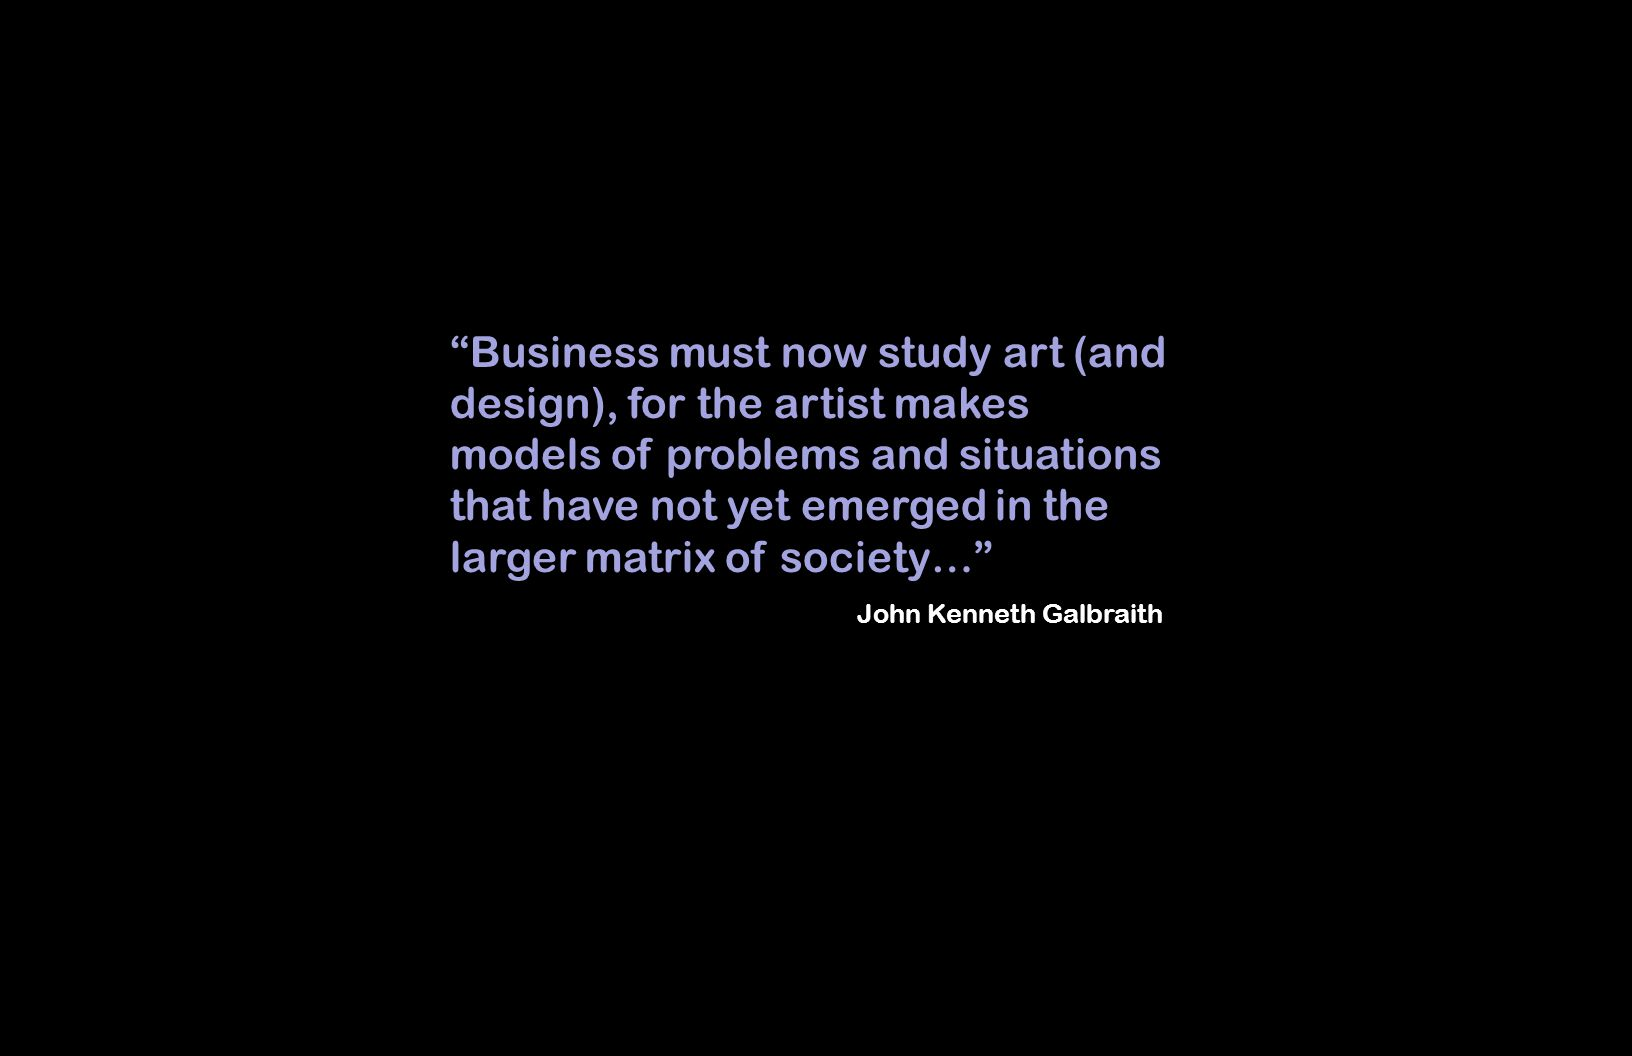 Business must now study art (and design), for the artist makes models of problems and situations that have not yet emerged in the larger matrix of society… John Kenneth Galbraith